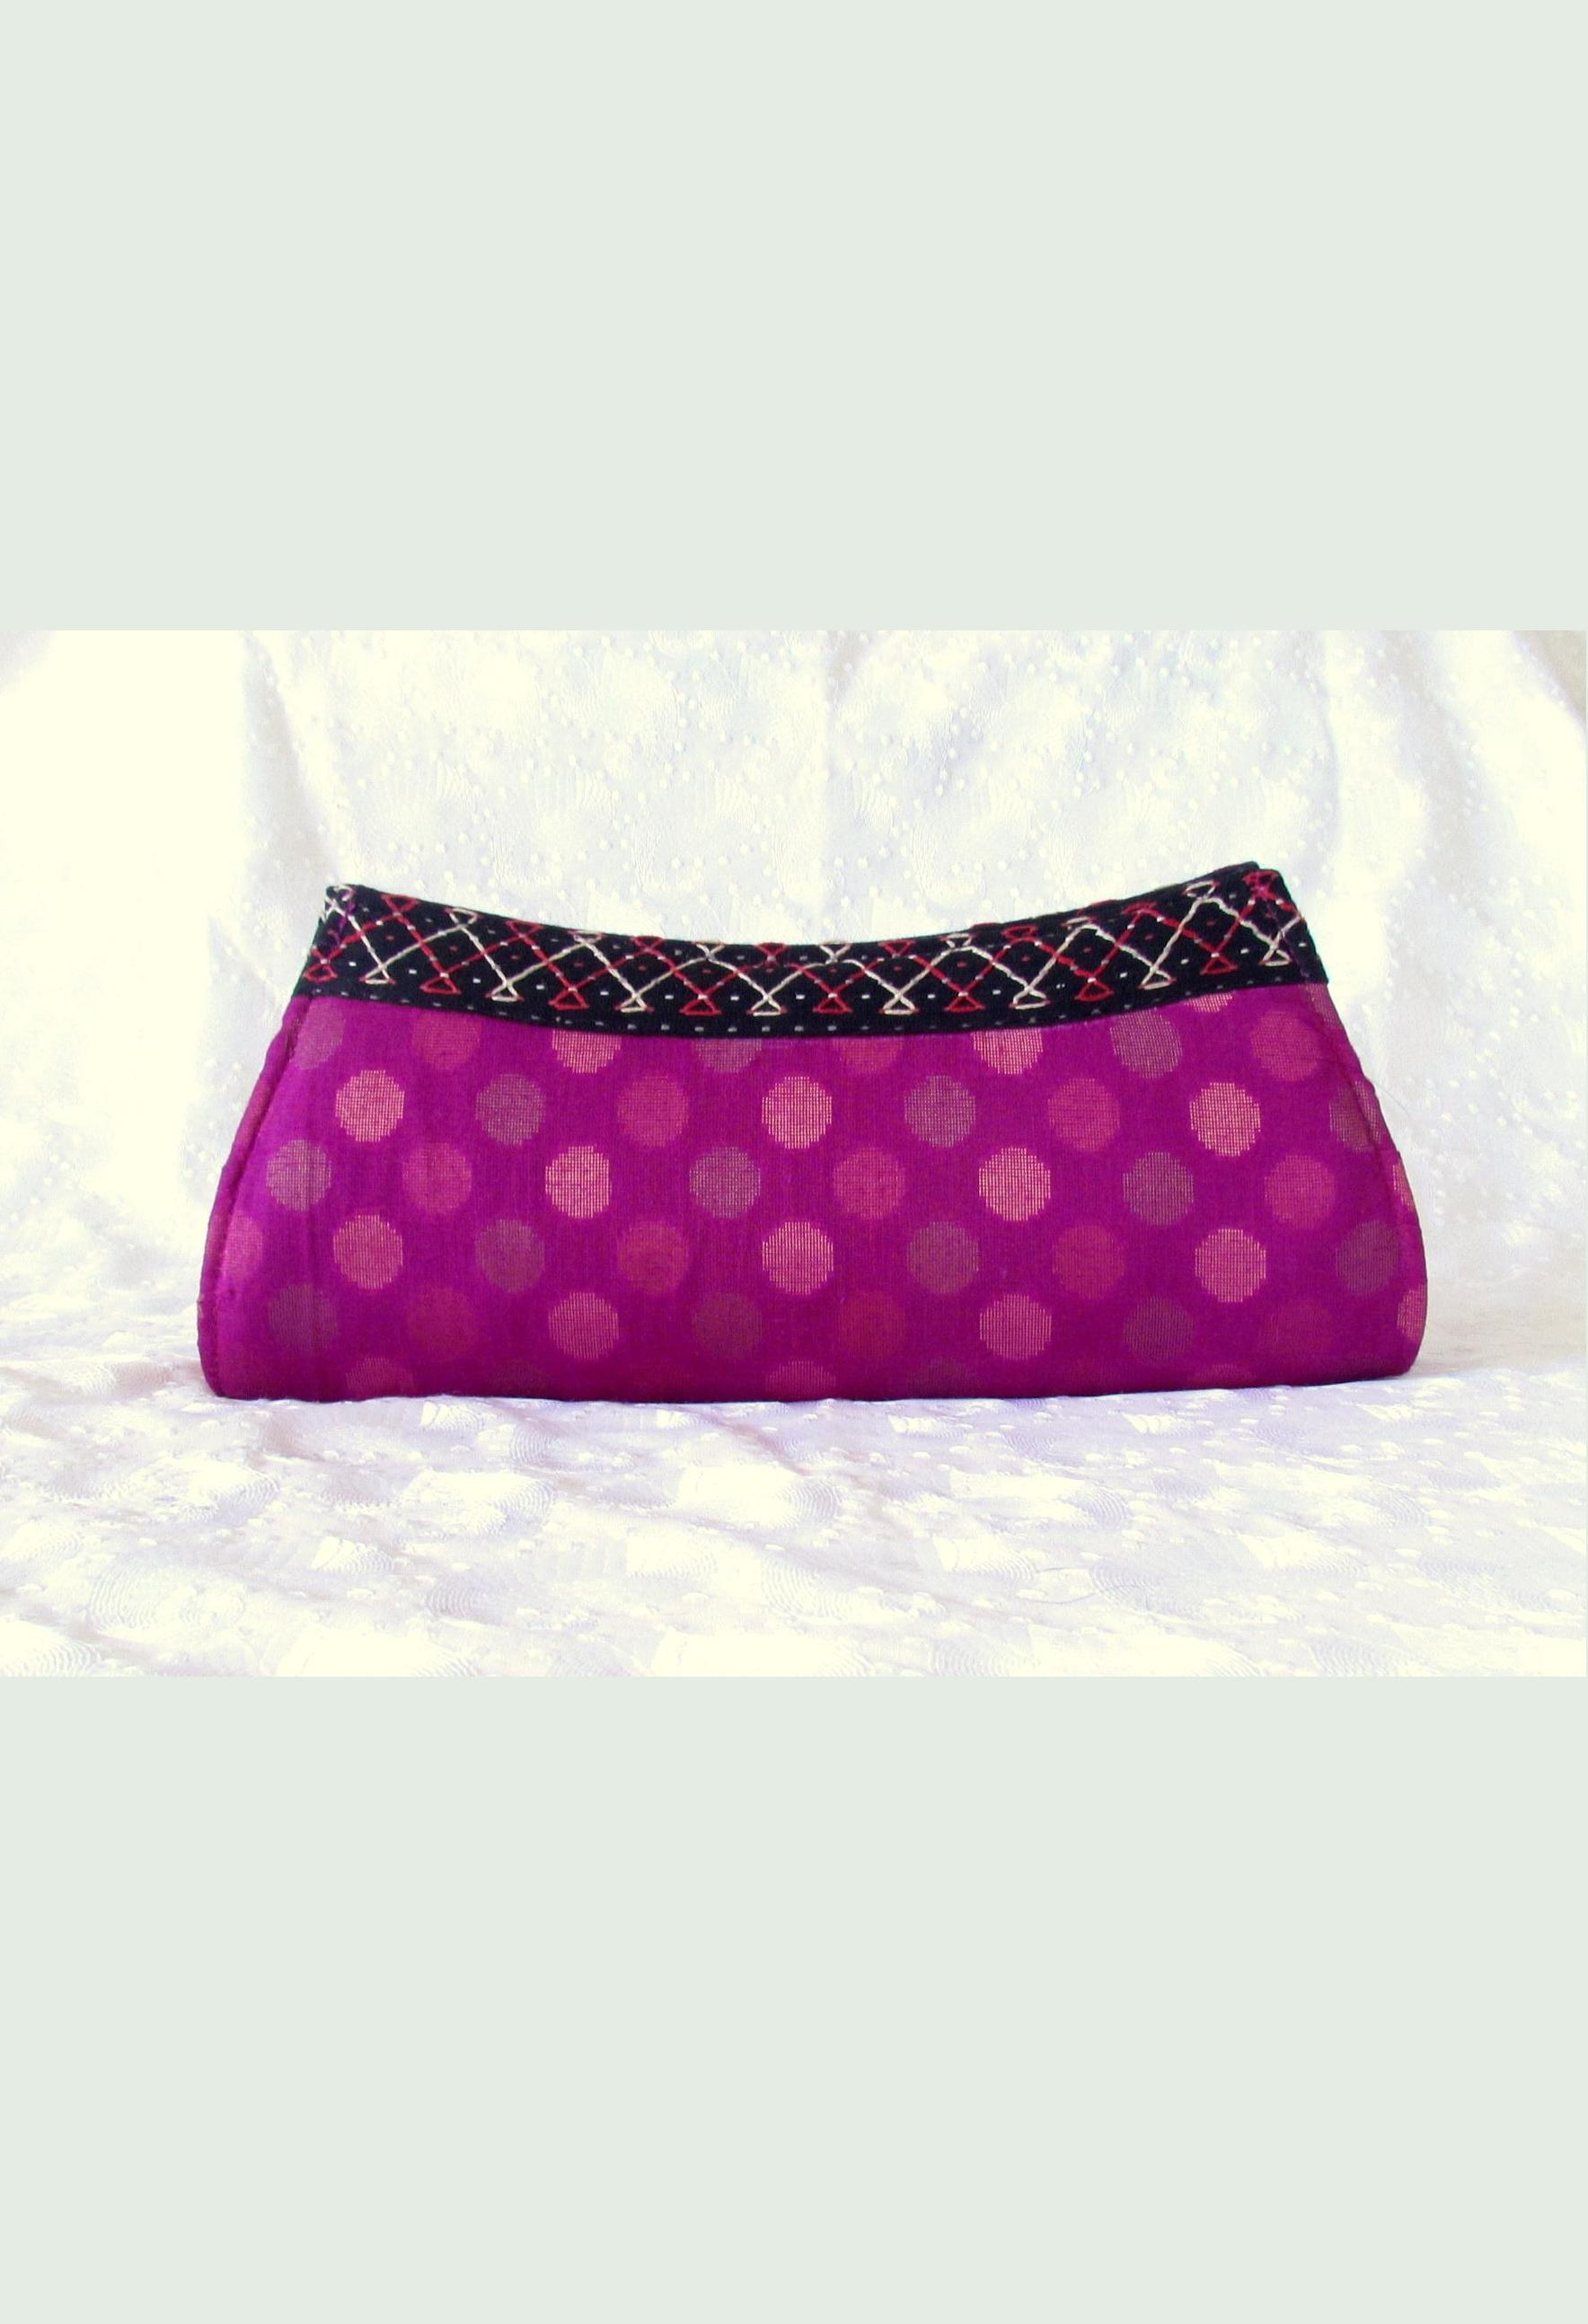 Banjara Embroidered Purple Silk Clutch